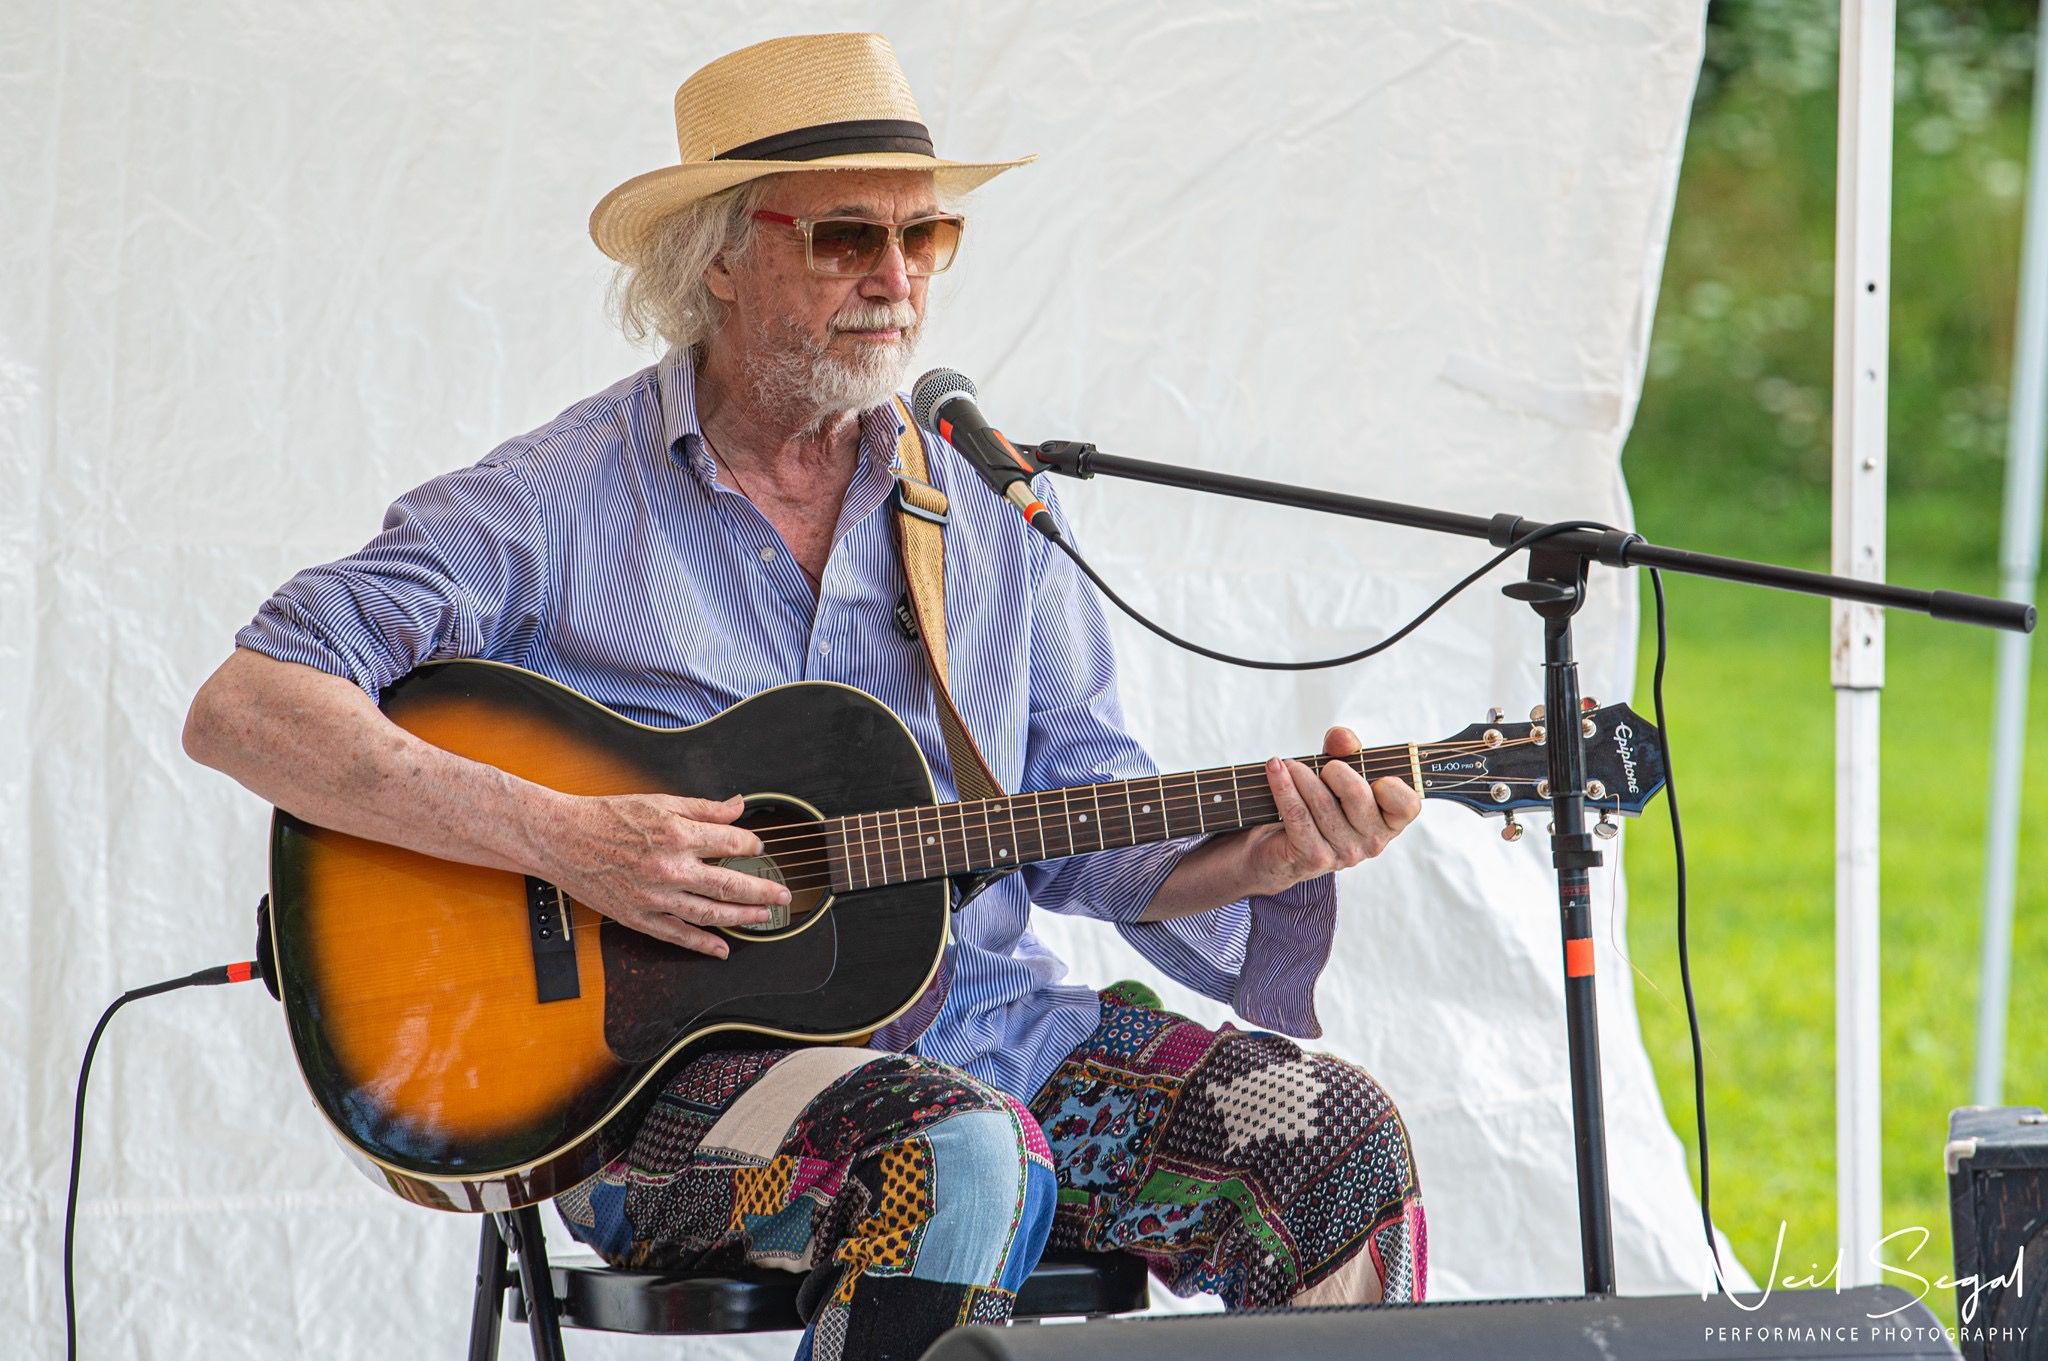 Paul McMahon, Performs at The Colony for Woodstock 50th